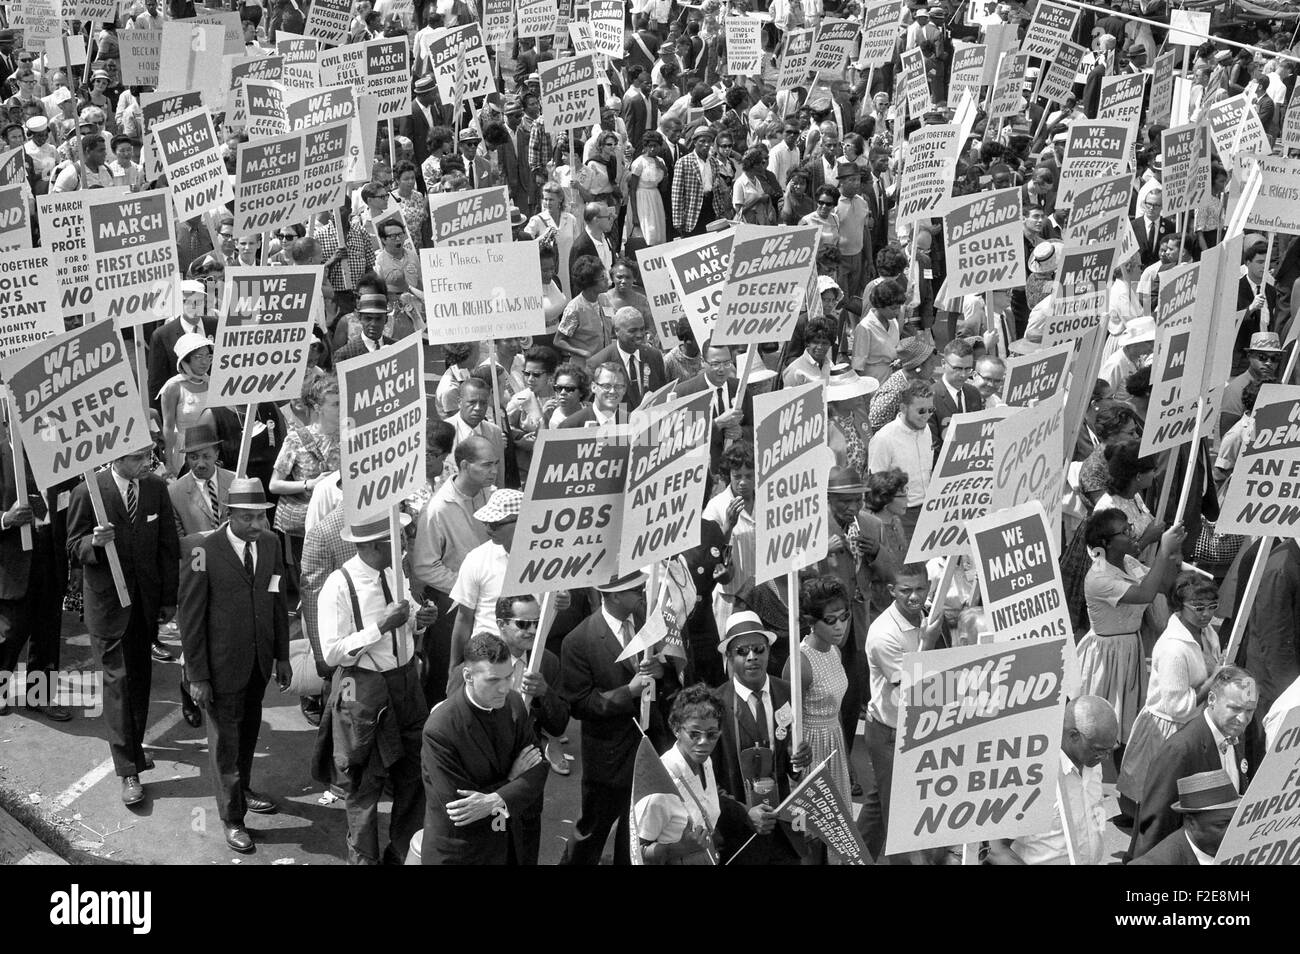 Civil rights supporters carry signs and take to the streets during the March on Washington for Jobs and Freedom - Stock Image